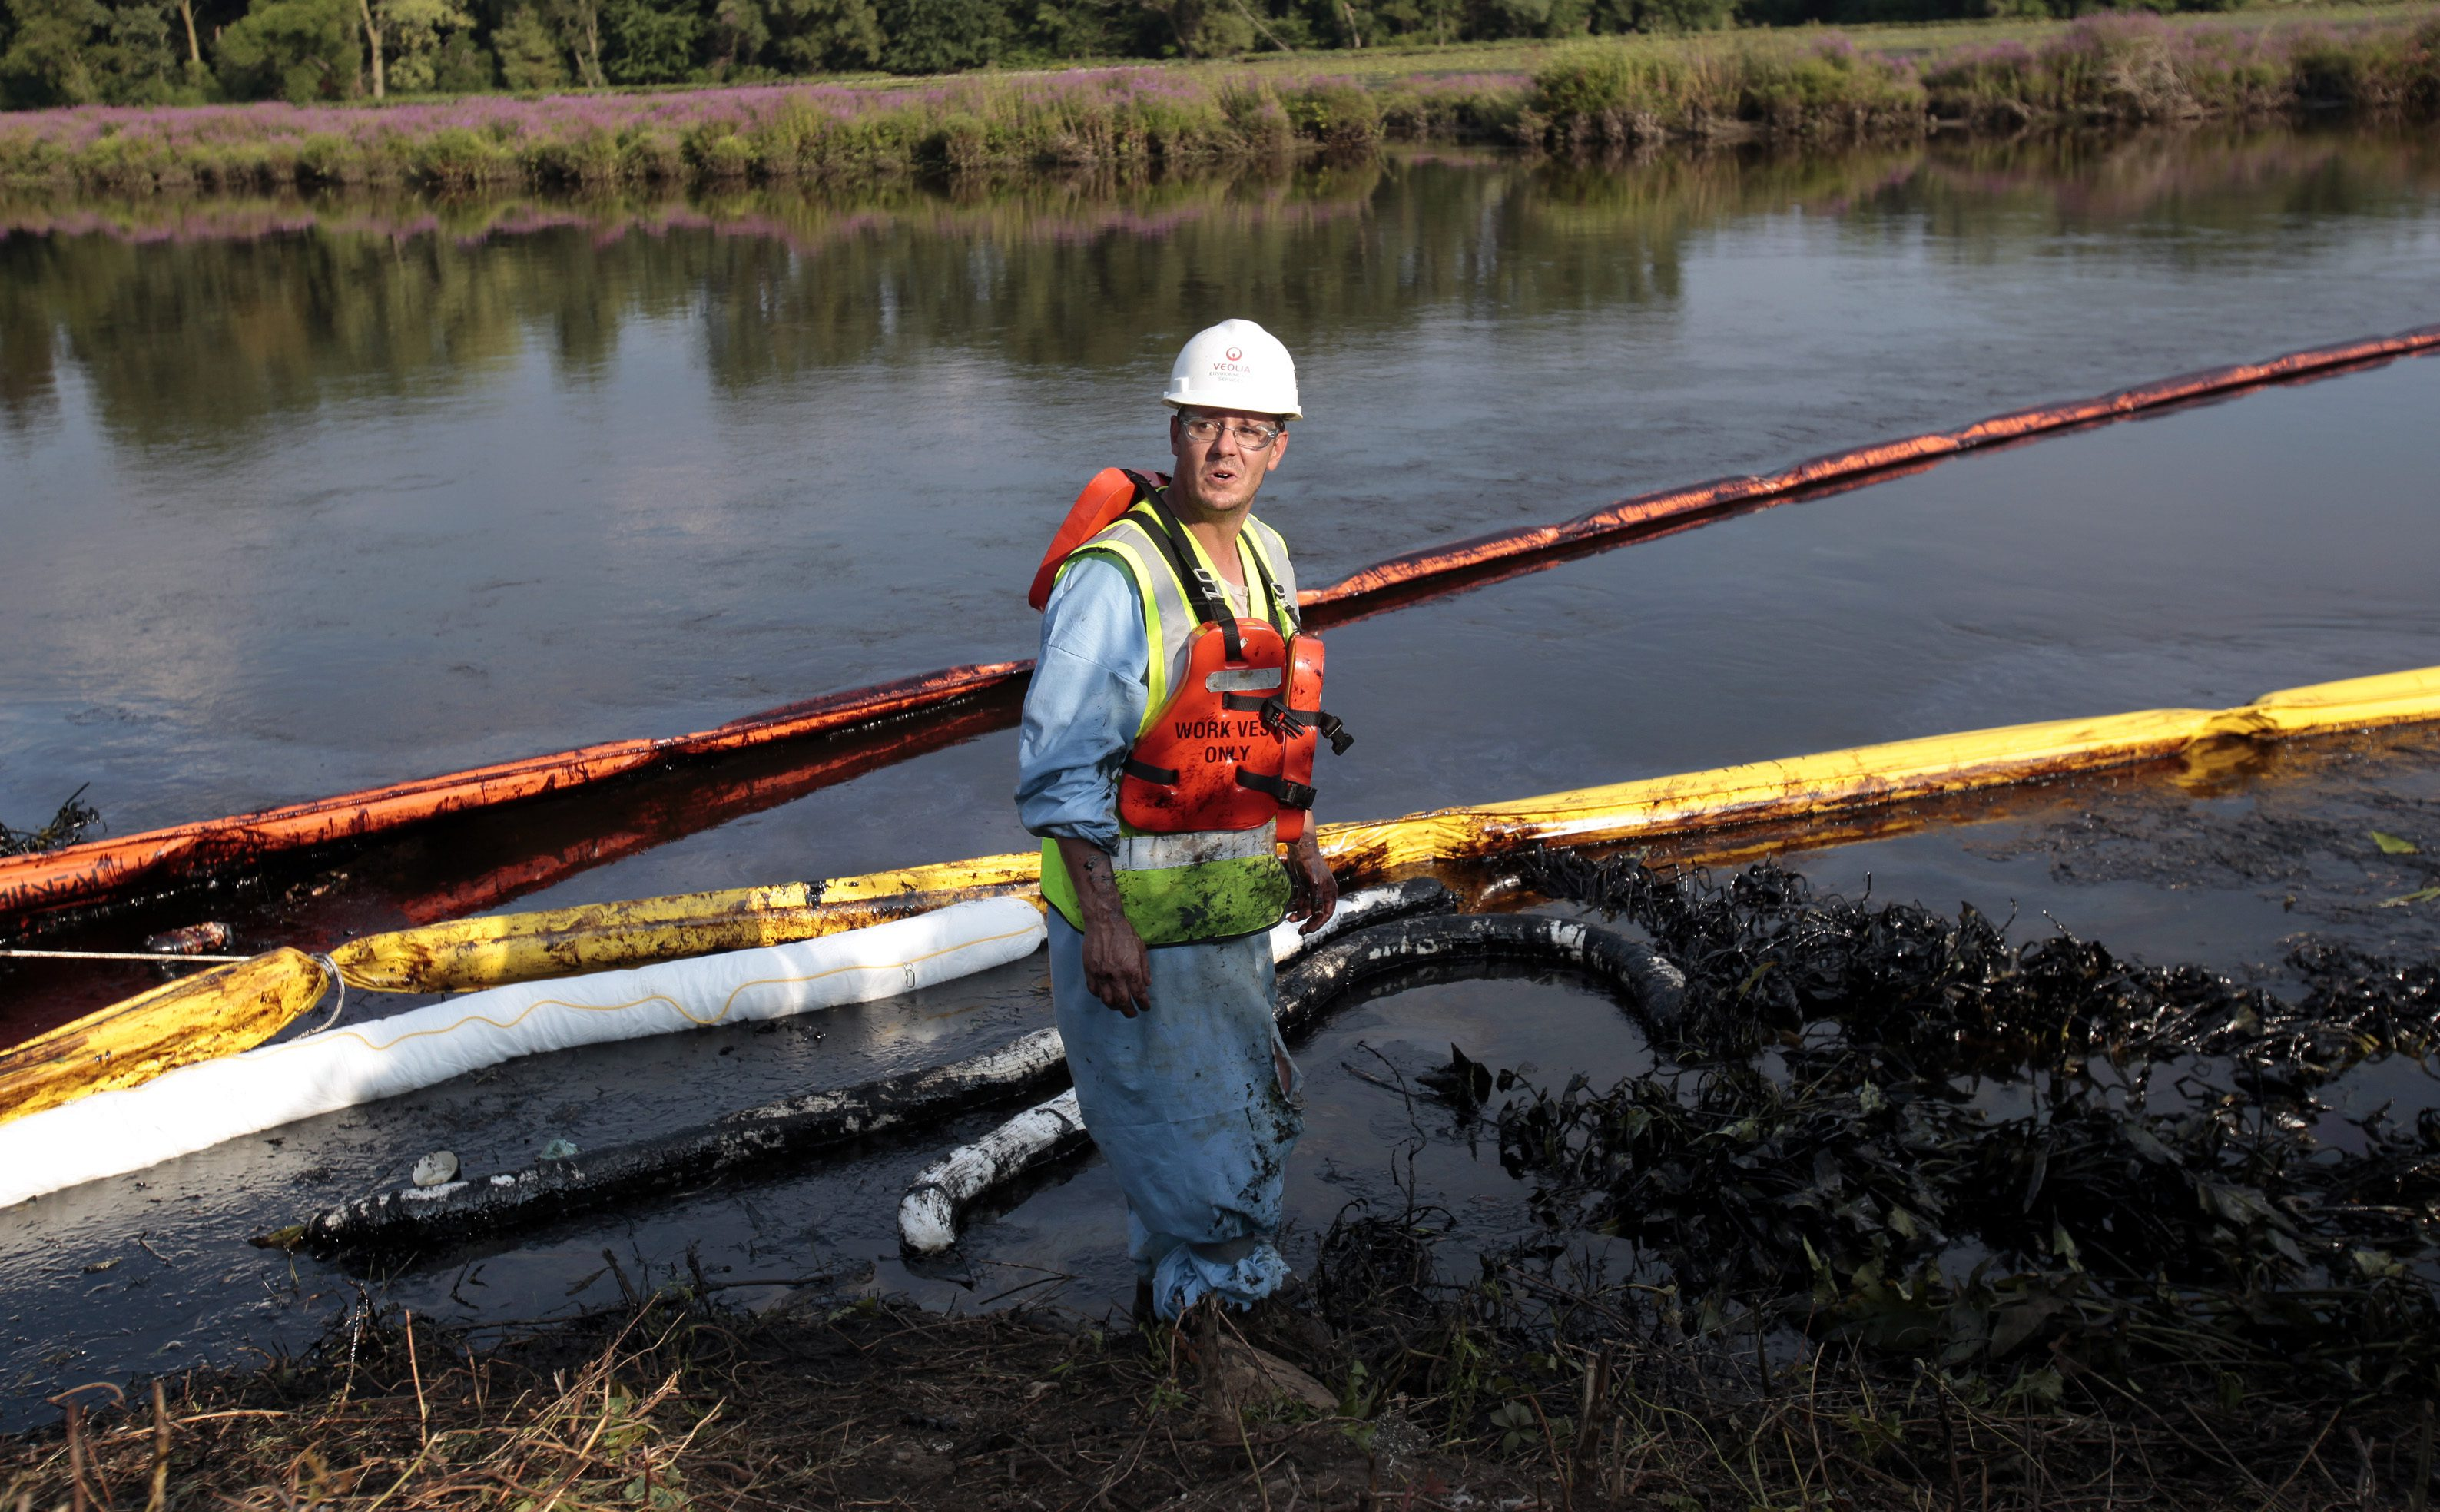 A cleanup worker places absorbent booms in the Kalamazoo river in Battle Creek after an oil pipeline, owned by Enbridge Energy Partners, leaked an estimated 820,000 gallons of oil into the river in Western Michigan near Marshall July 31, 2010.